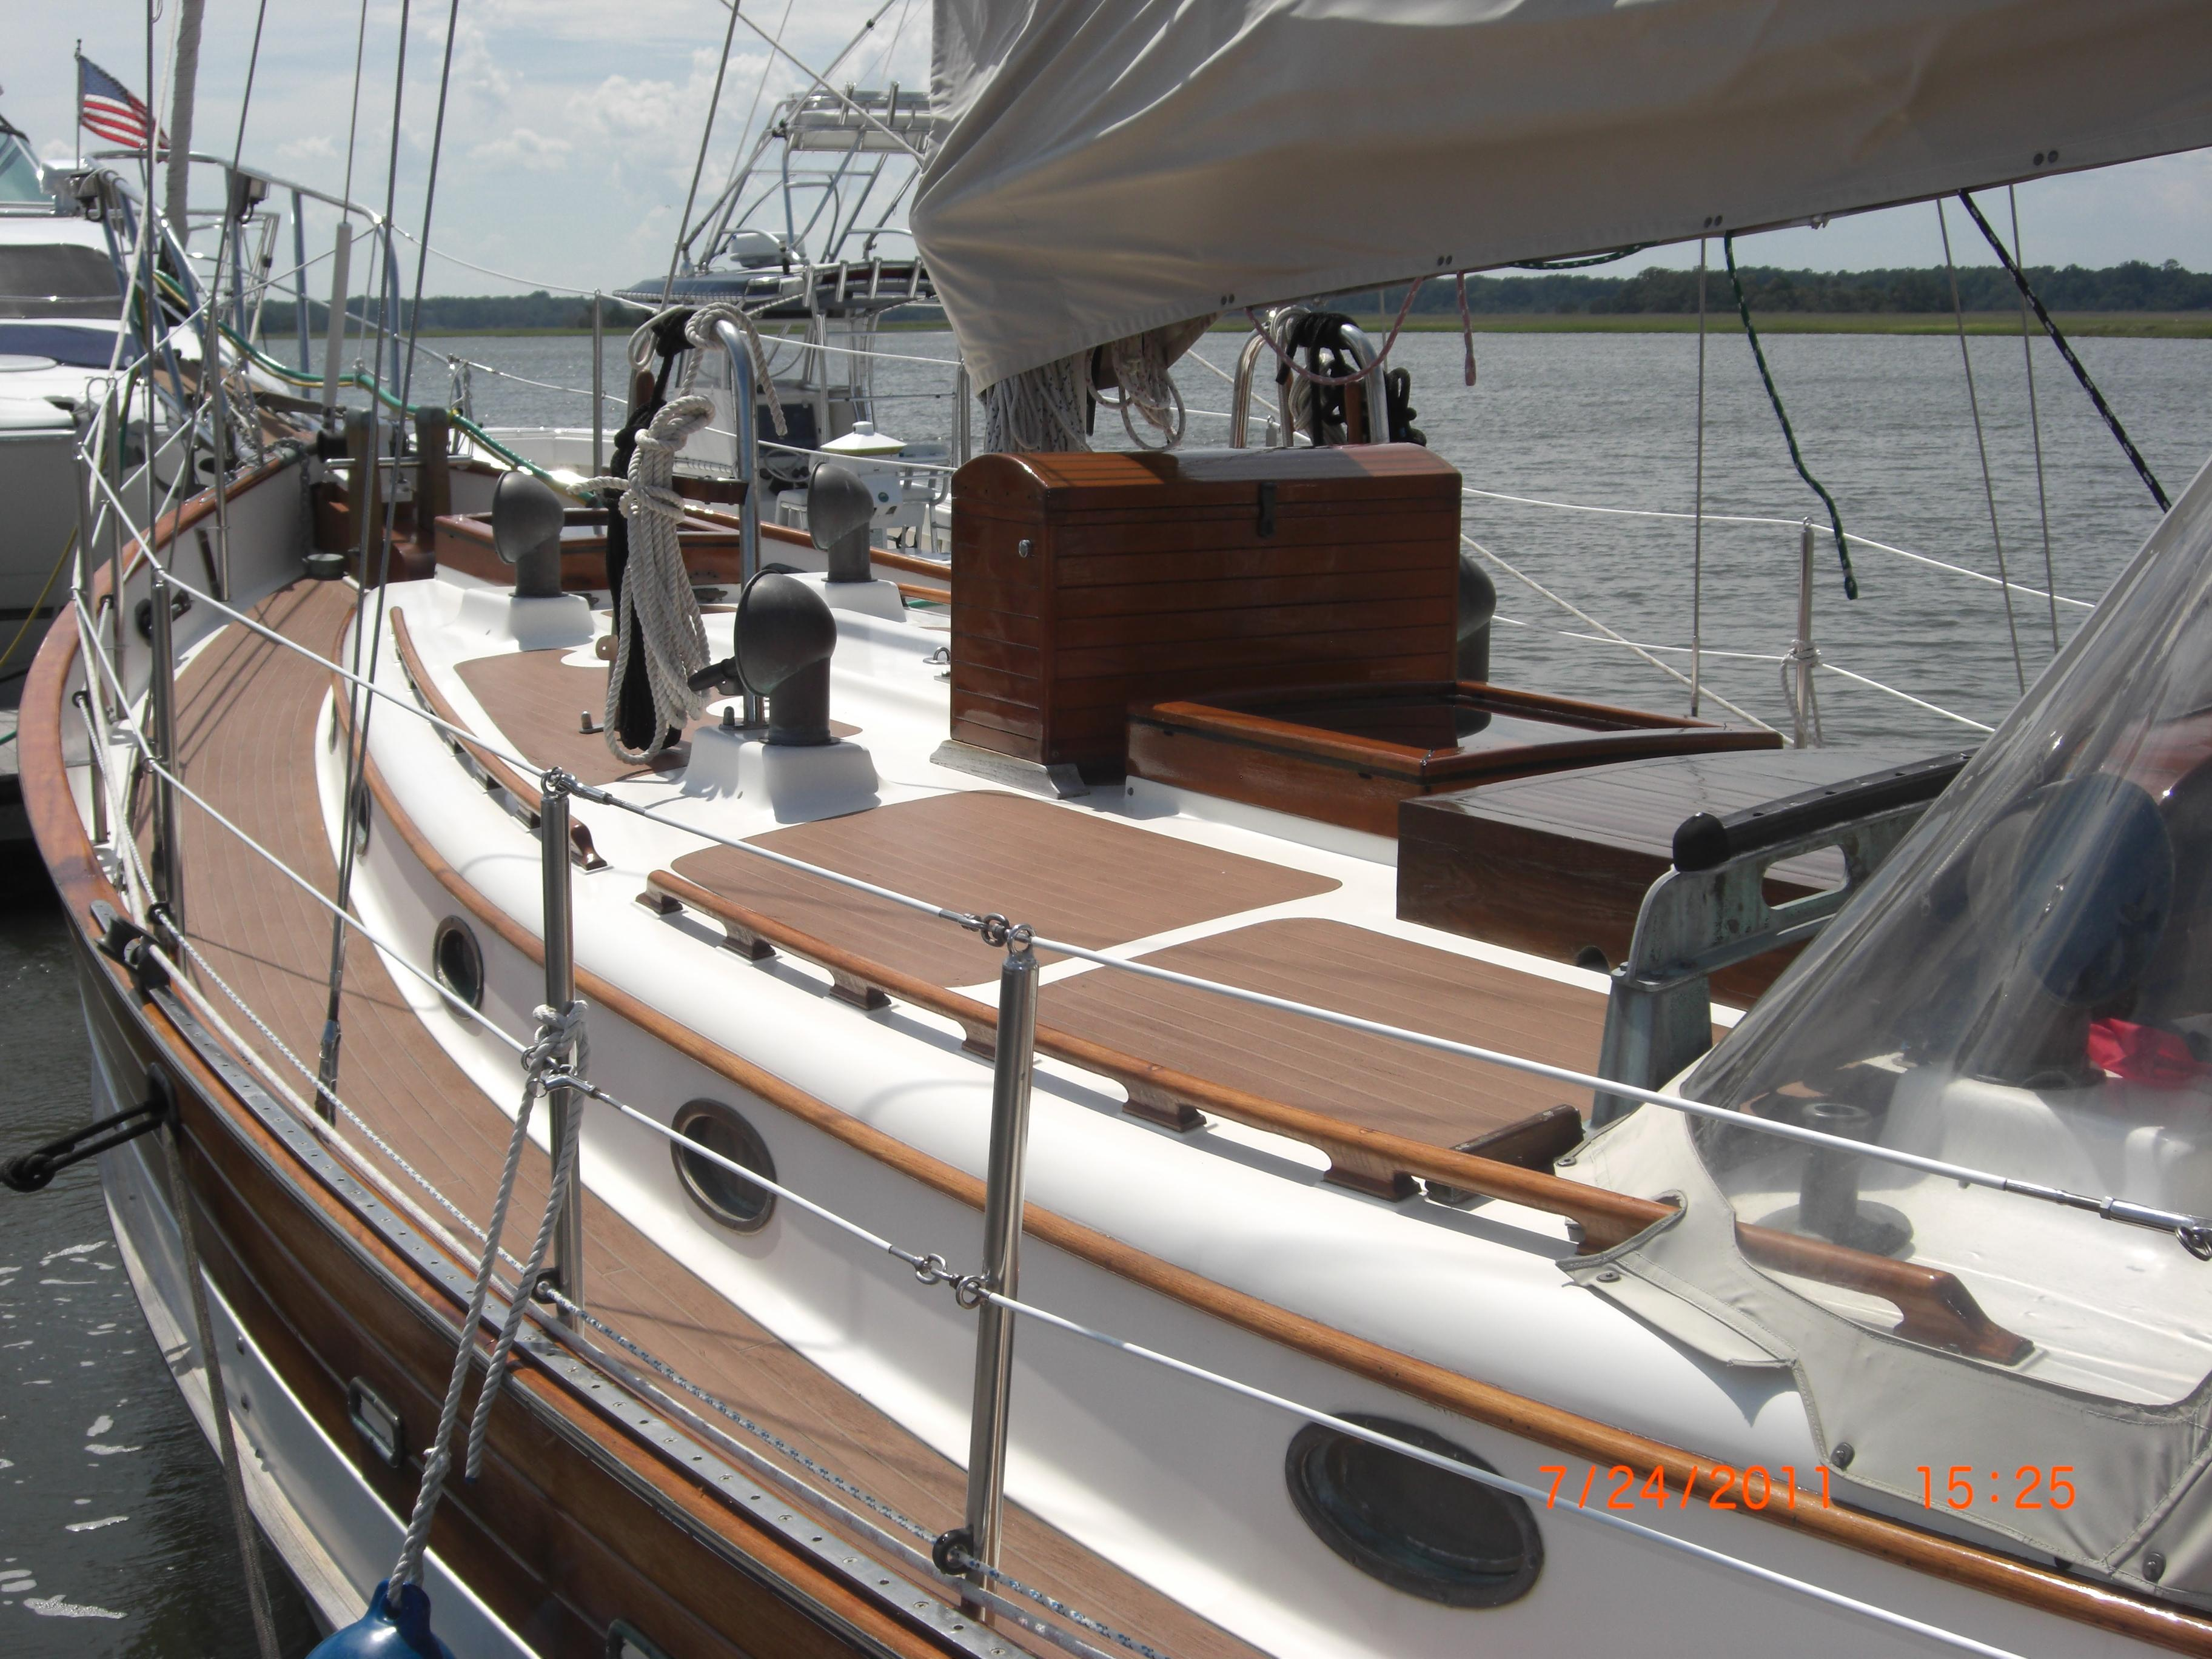 4761049_20140714122930856_1_XLARGE&w=3648&h=2736&t=1405370186000 1985 hans christian 38t sail boat for sale www yachtworld com Simple Boat Wiring Diagram at n-0.co